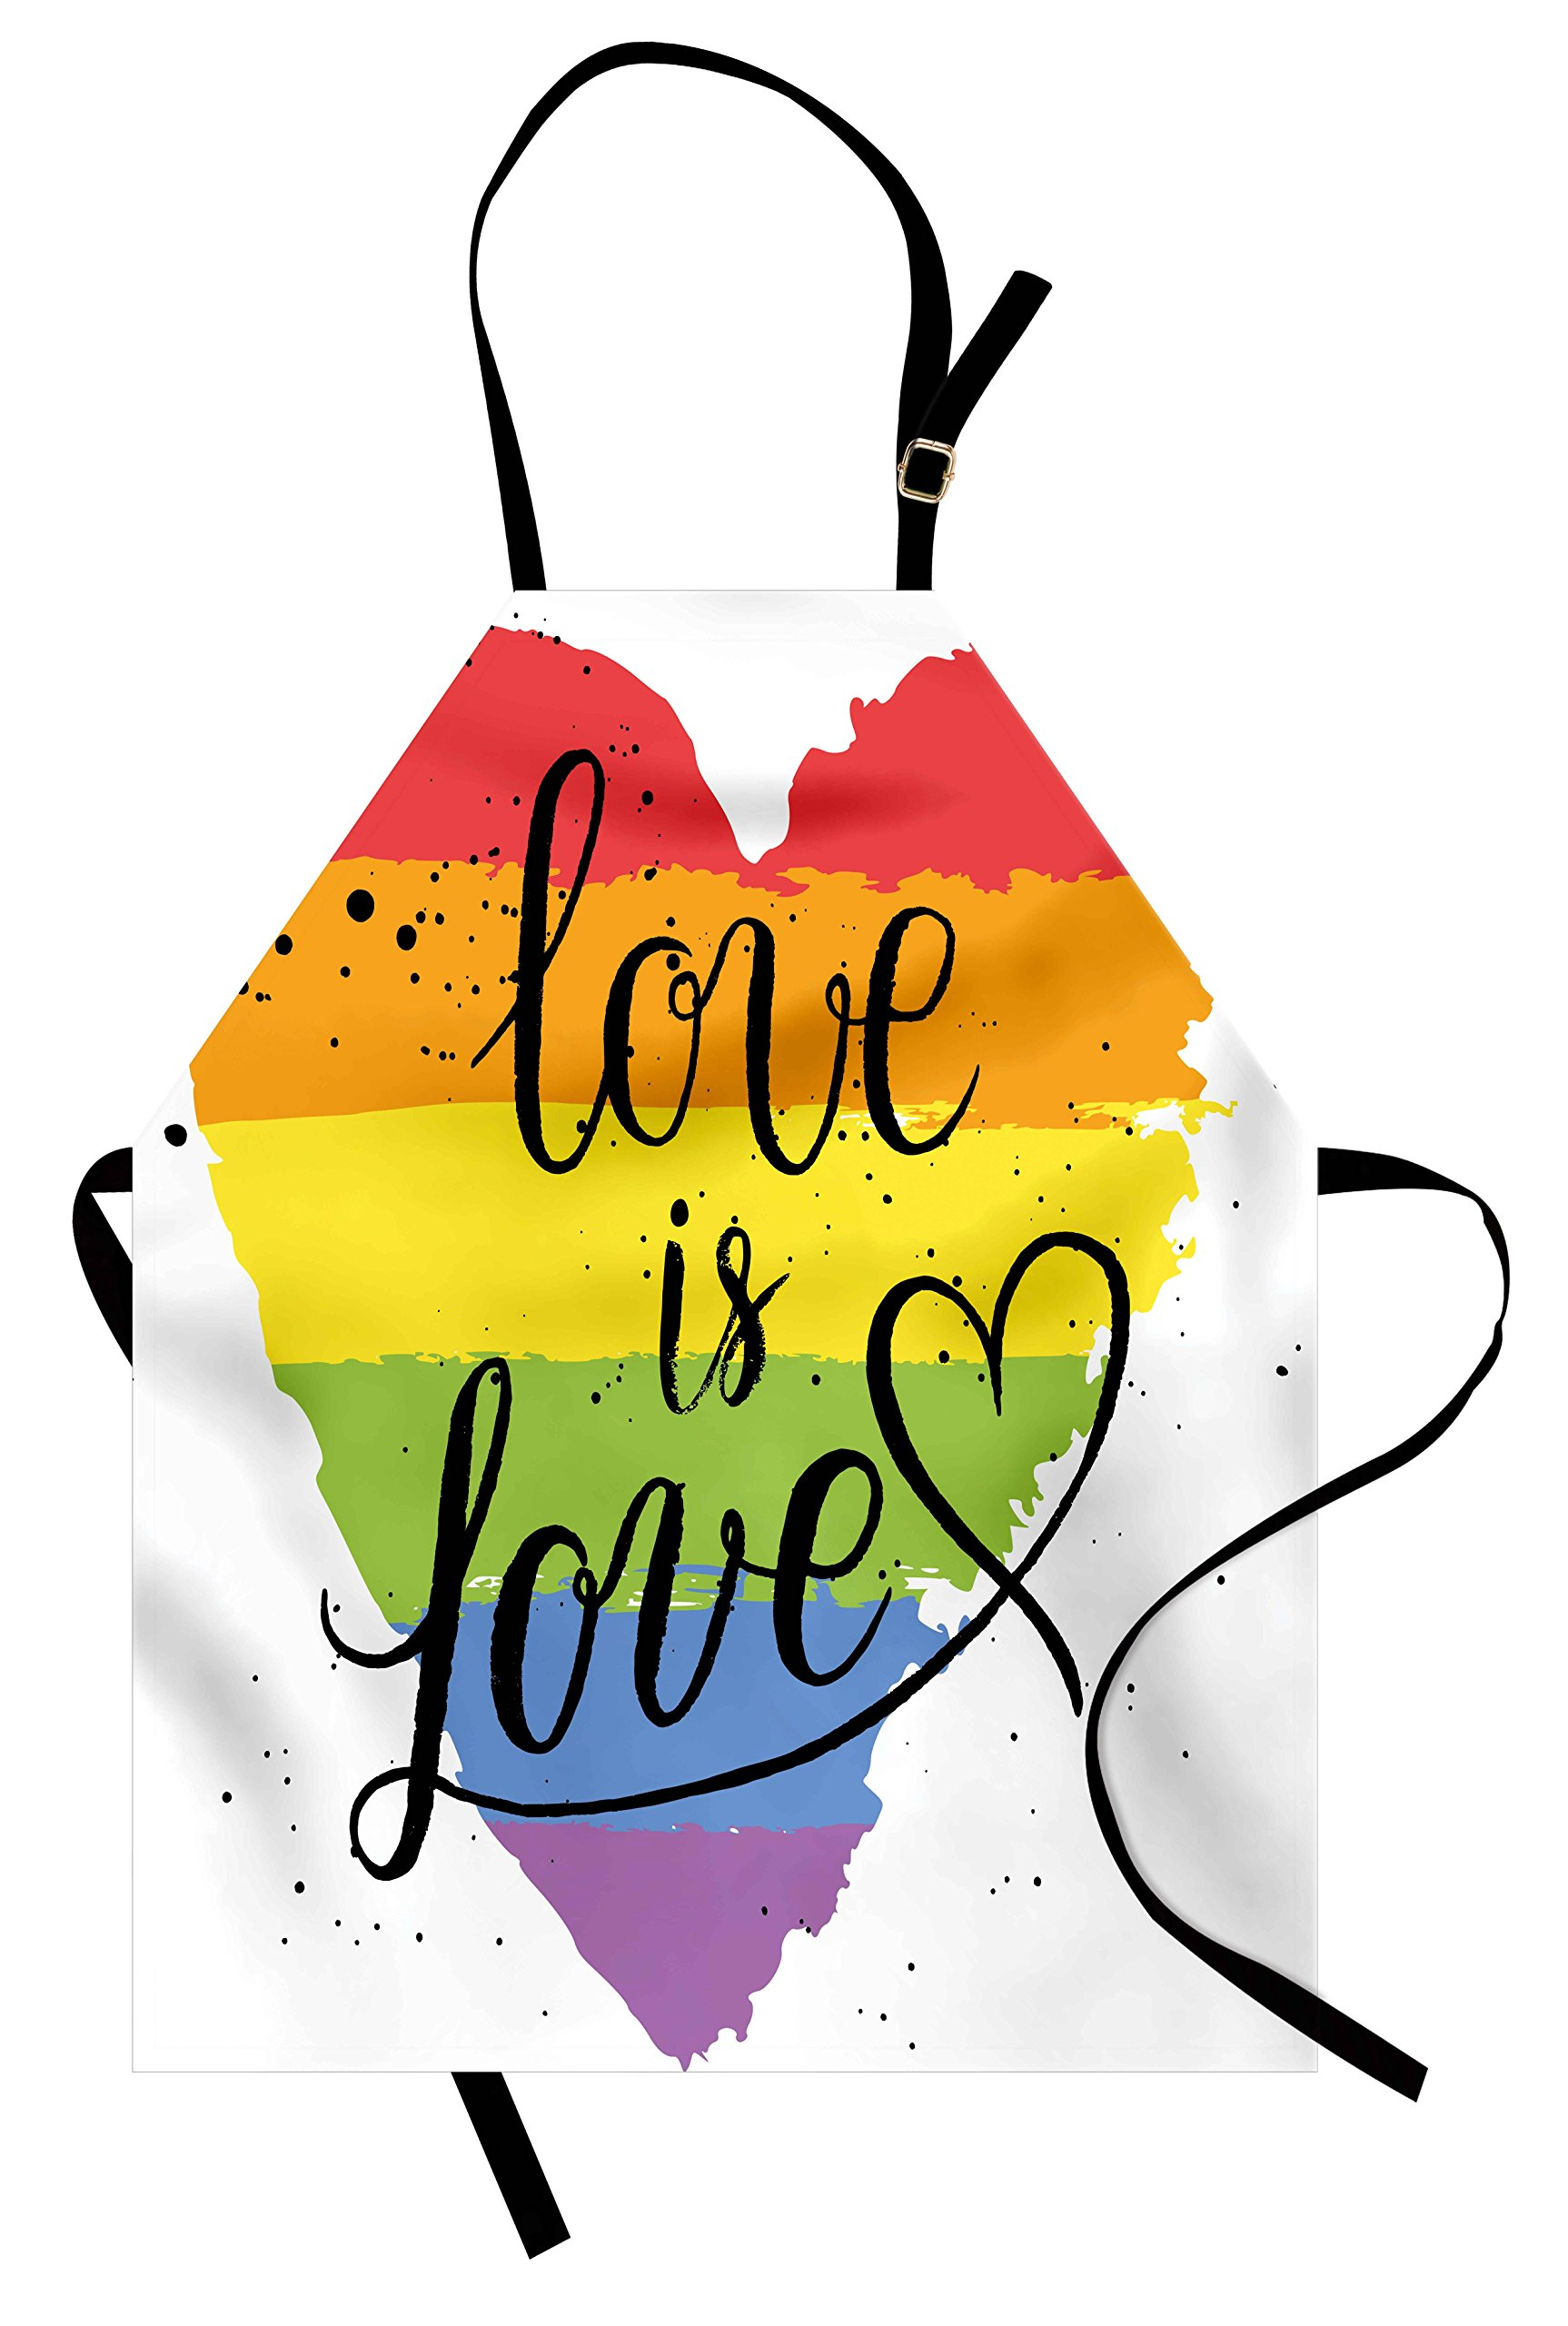 Ambesonne Pride Apron, LGBT Gay Lesbian Parade Love Valentines Inspiring Hand Writing Paint Strokes Artistic, Unisex Kitchen Bib Apron with Adjustable Neck for Cooking Baking Gardening, Multicolor